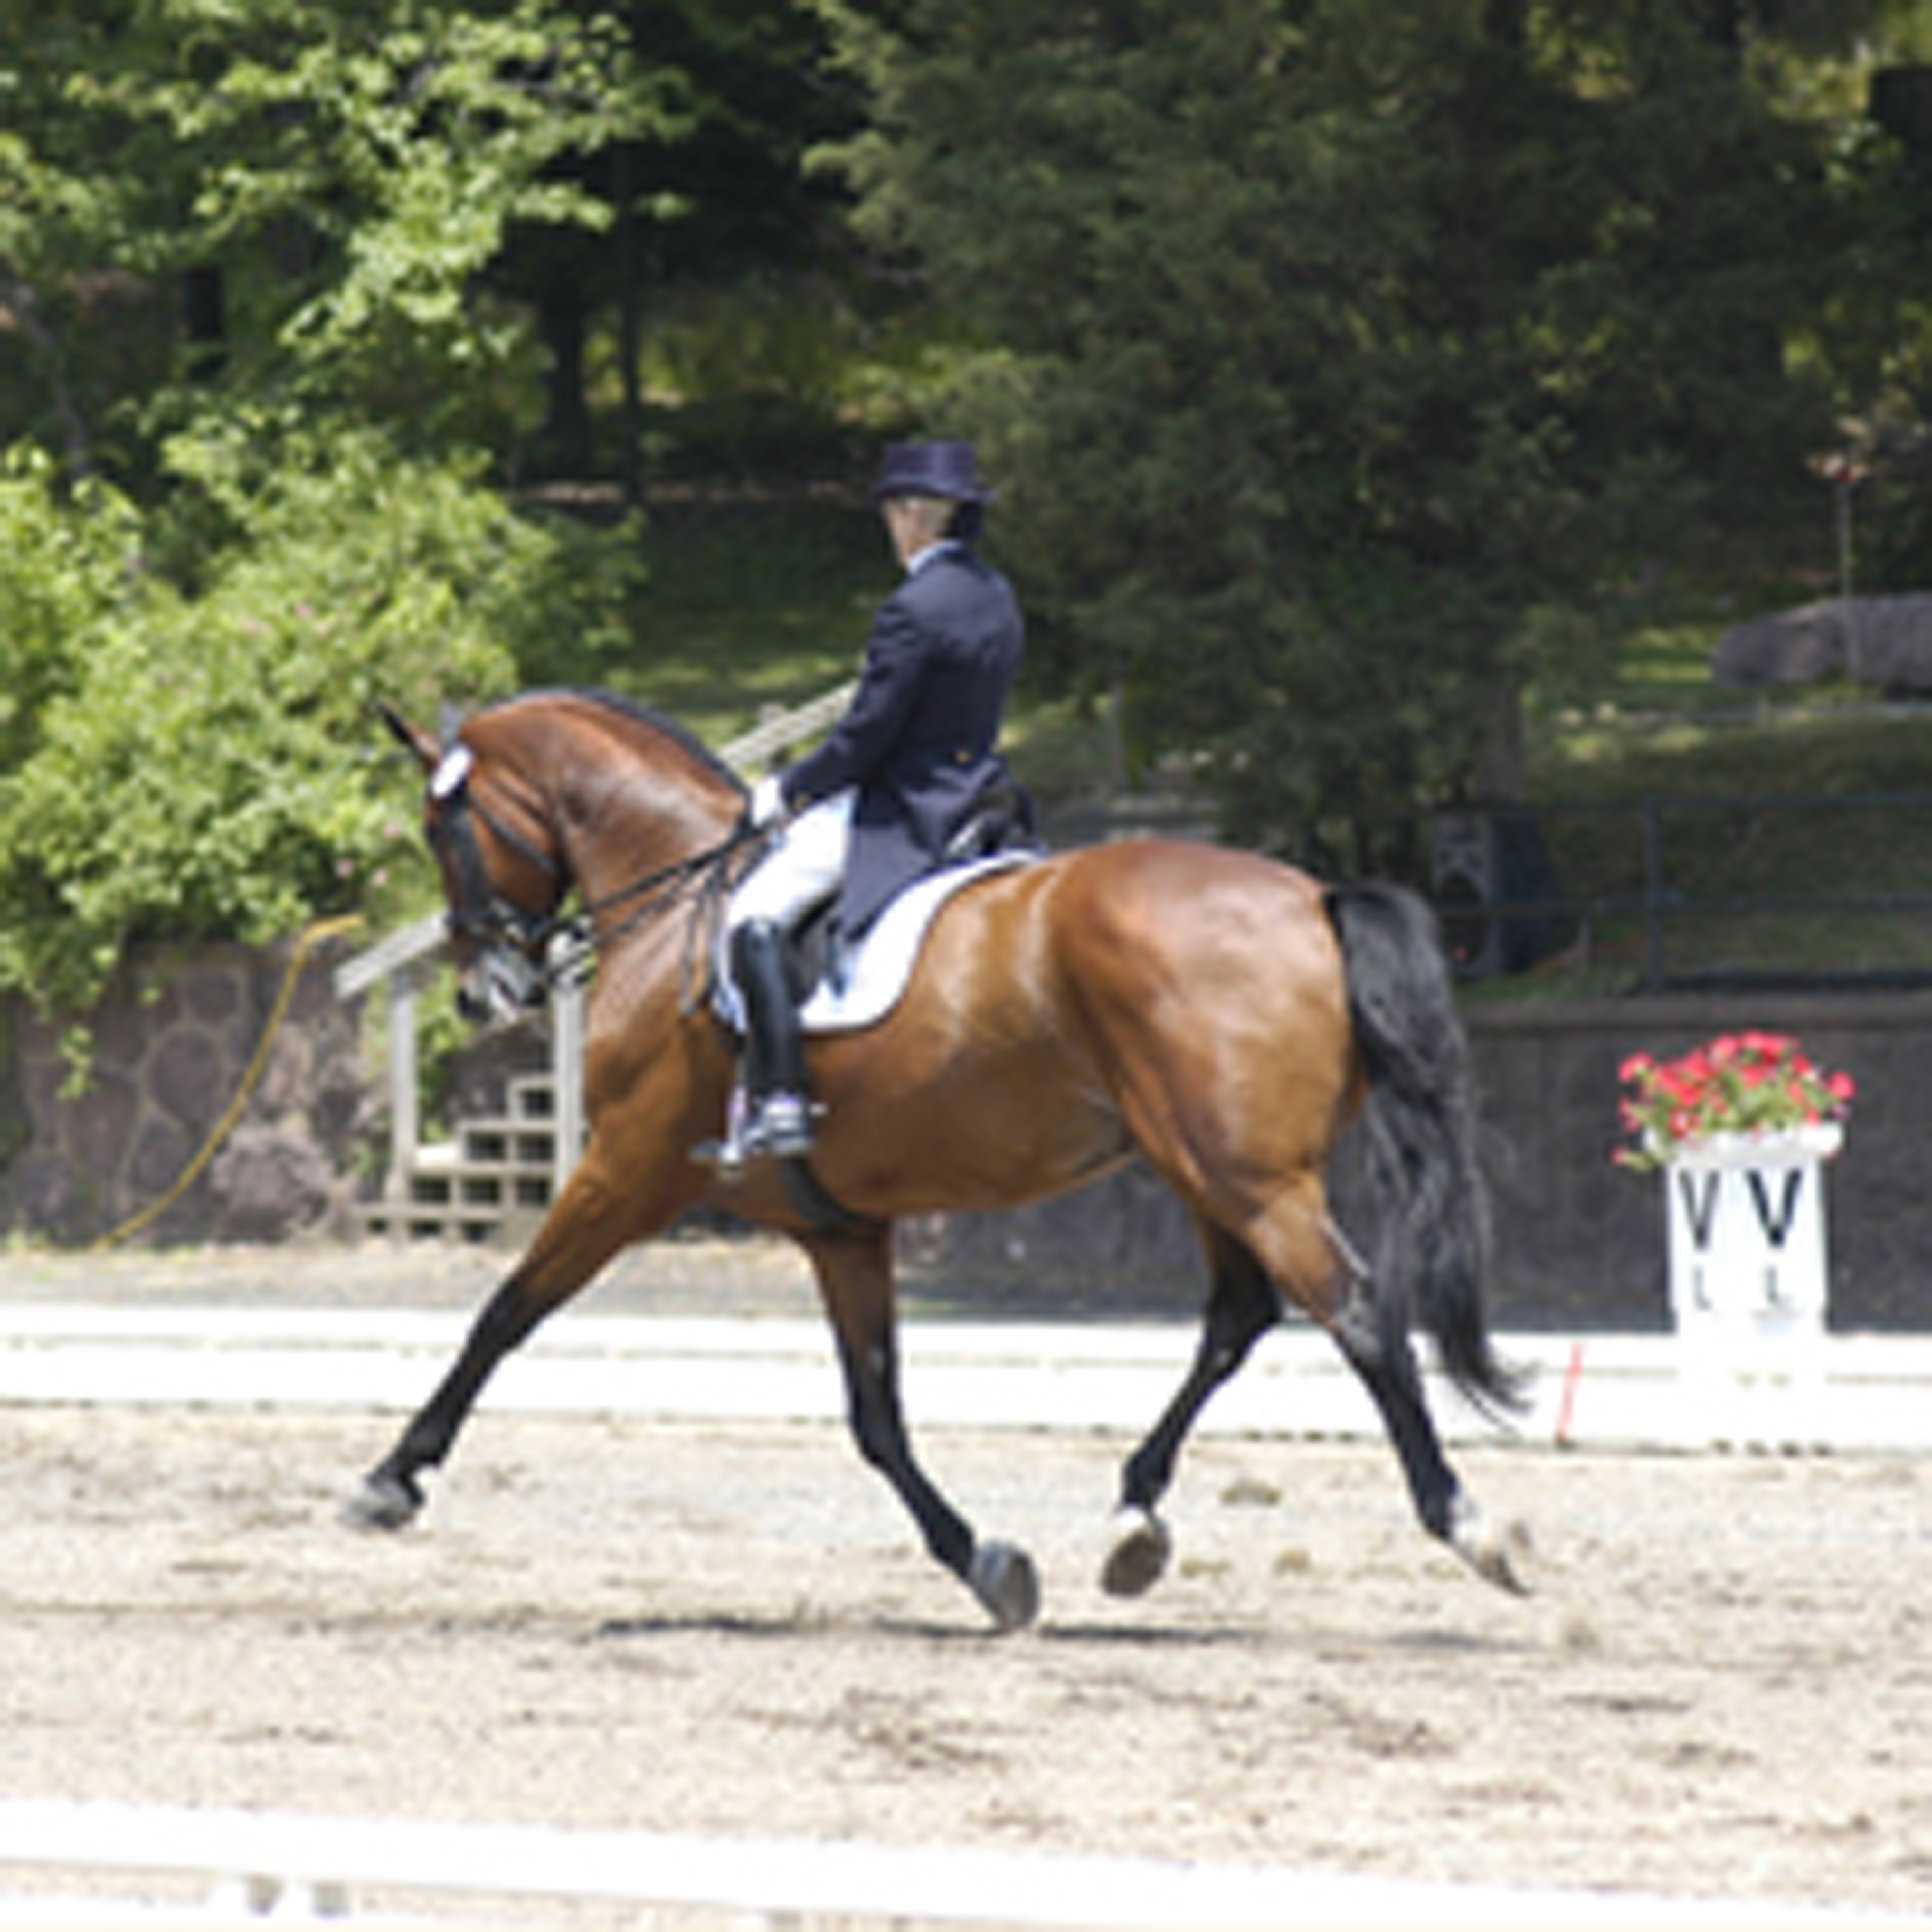 How To Be a Good Grand Prix Dressage Spectator